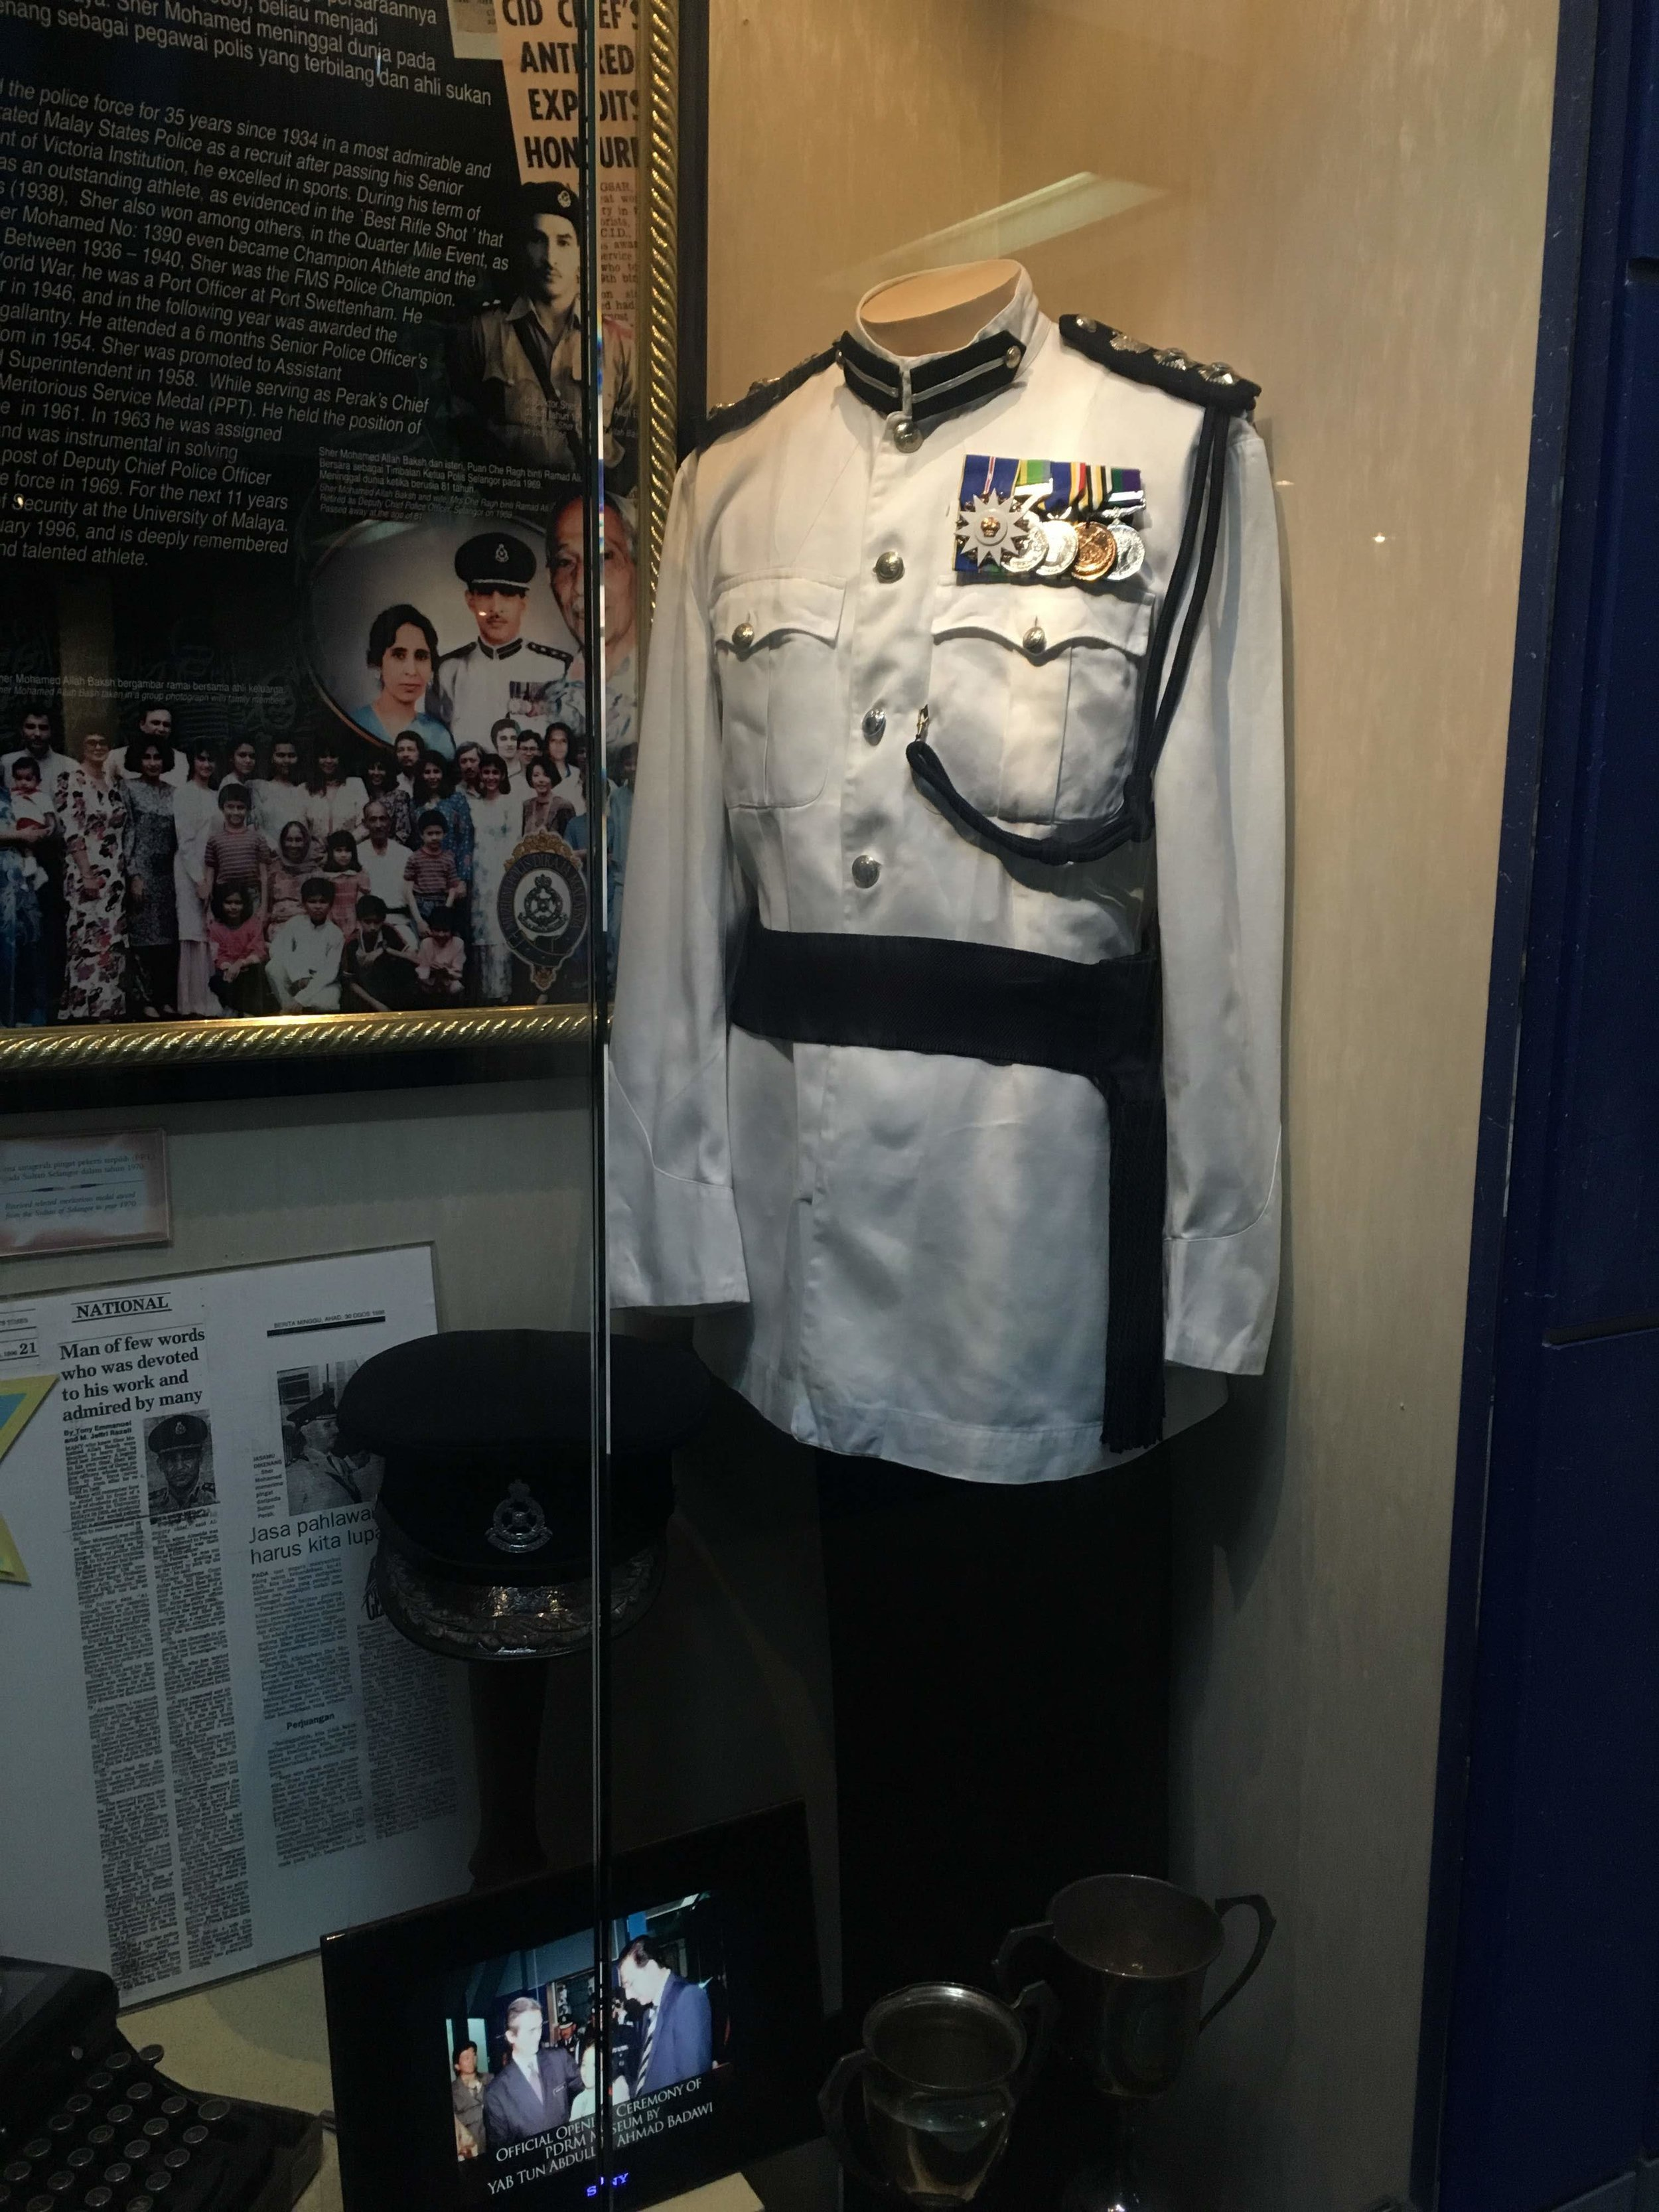 historical uniforms of the Malaysian Royal Police